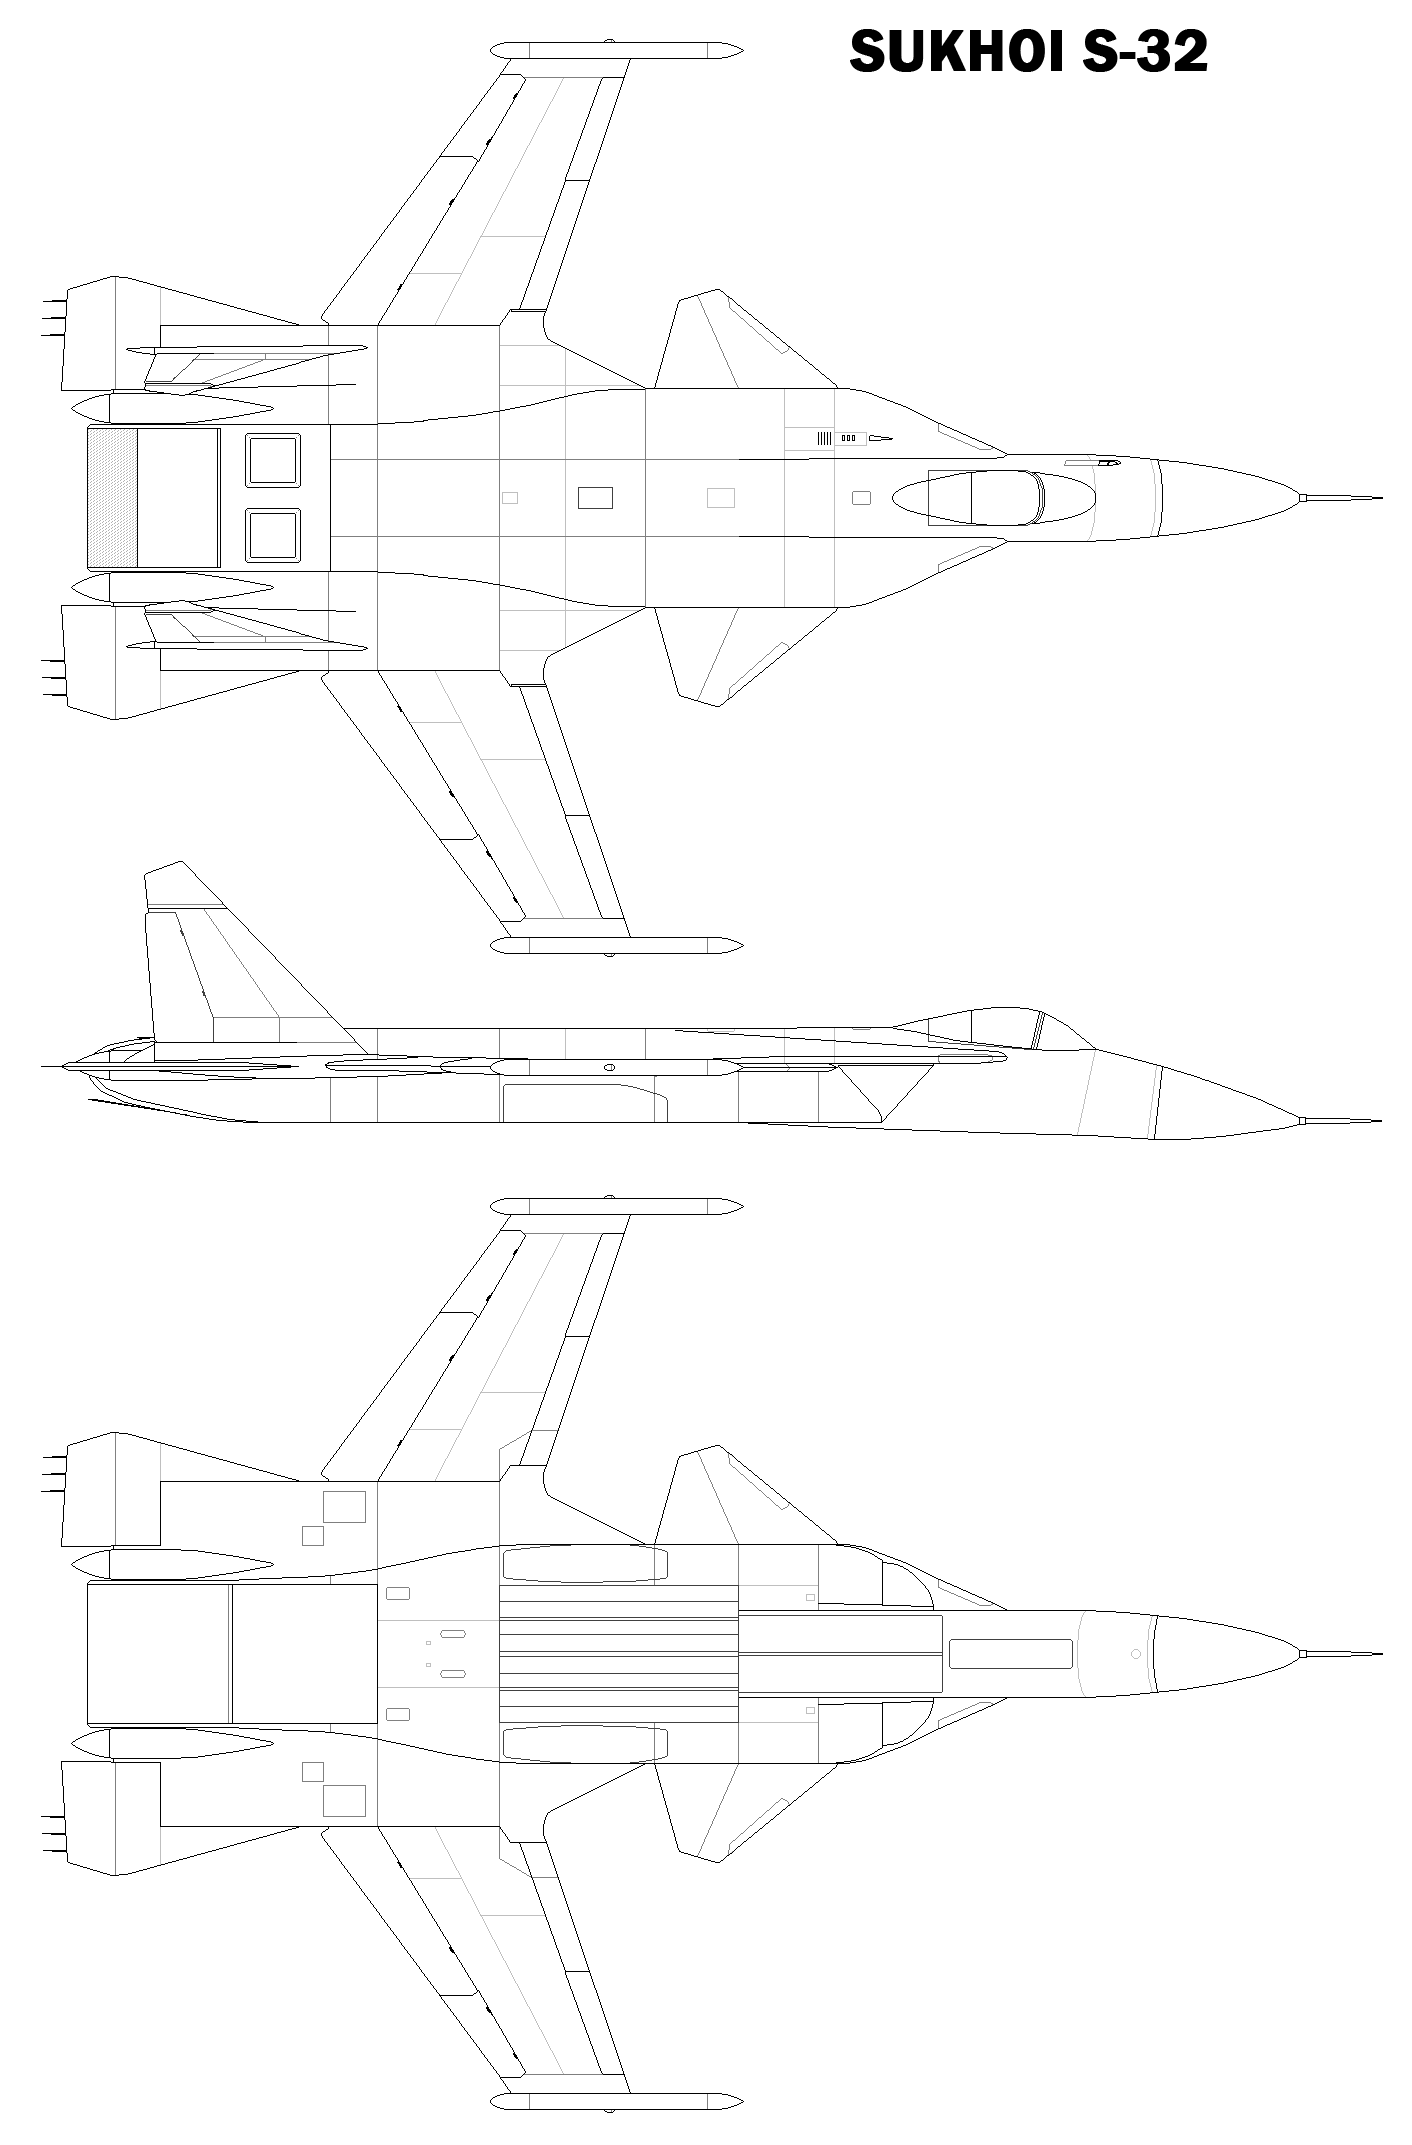 Super Aircraft Design Contest Thread Vector Thrust Indie Db Magic Mobility X8 Wiring Diagram 5 Stability 2 Defense 4 Air To Ground Sub Weapon Gsh 30 1 Main R 60 Special 77